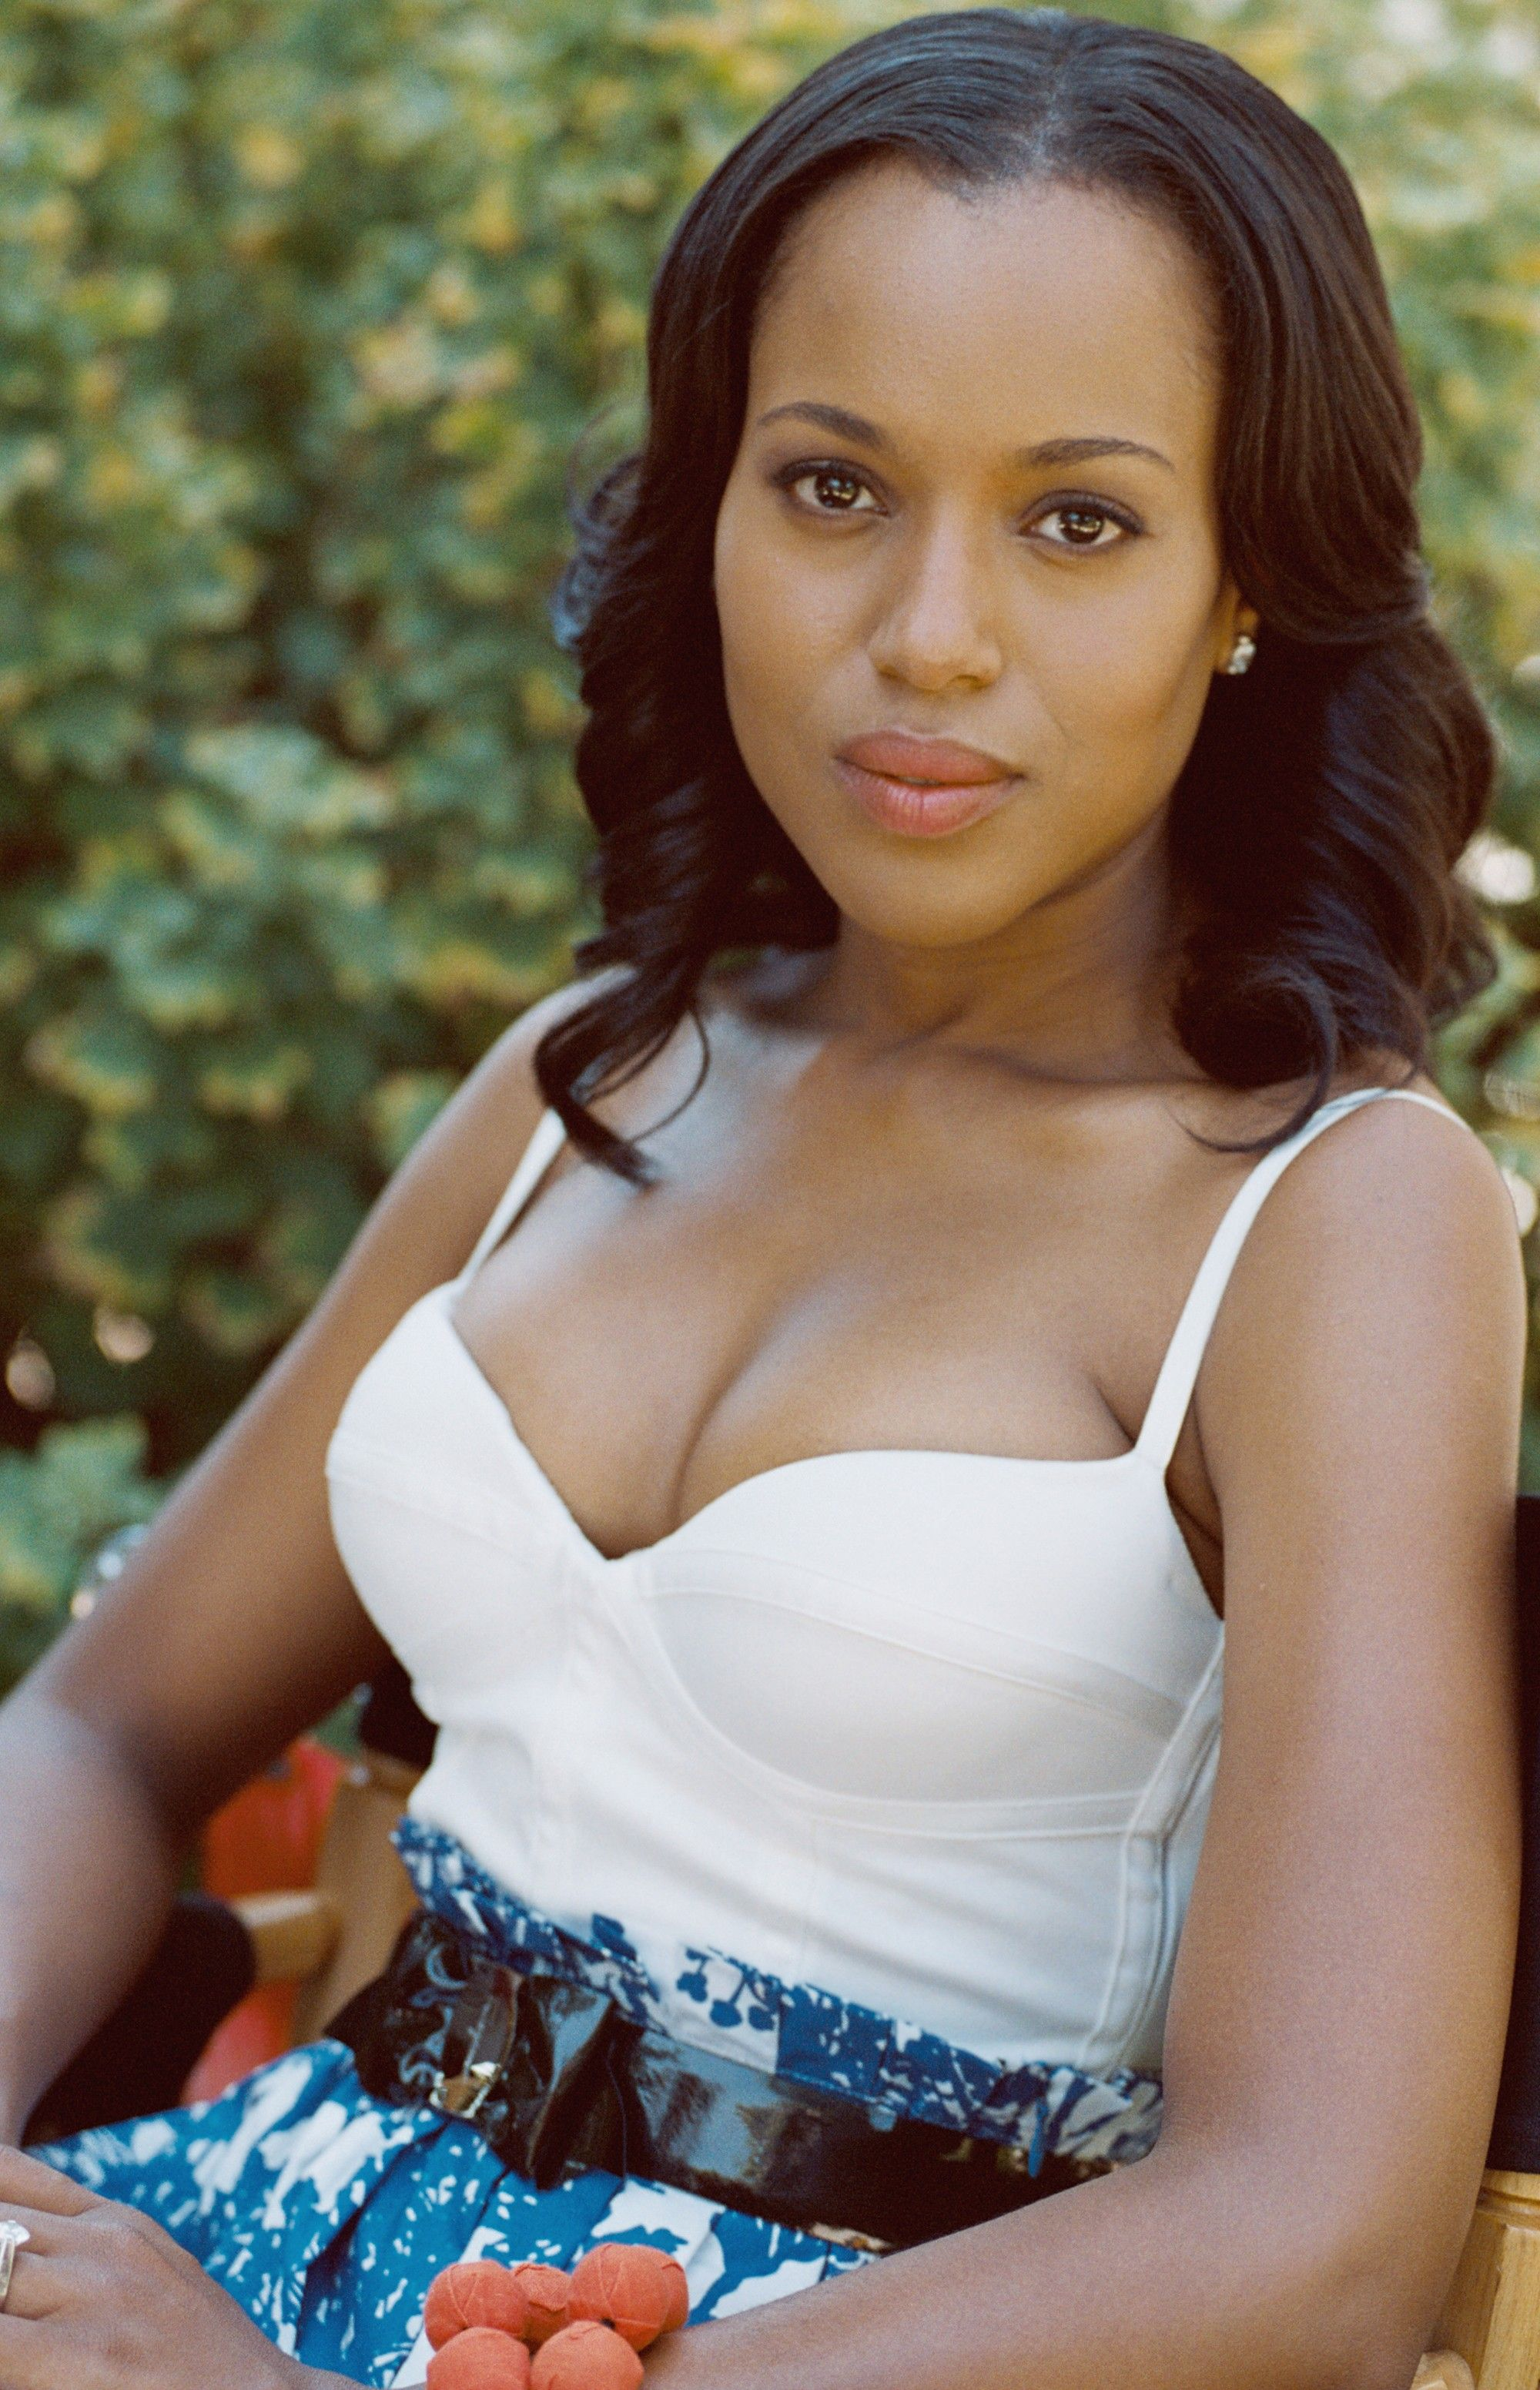 Cleavage Kerry Washington nudes (54 images), Cleavage